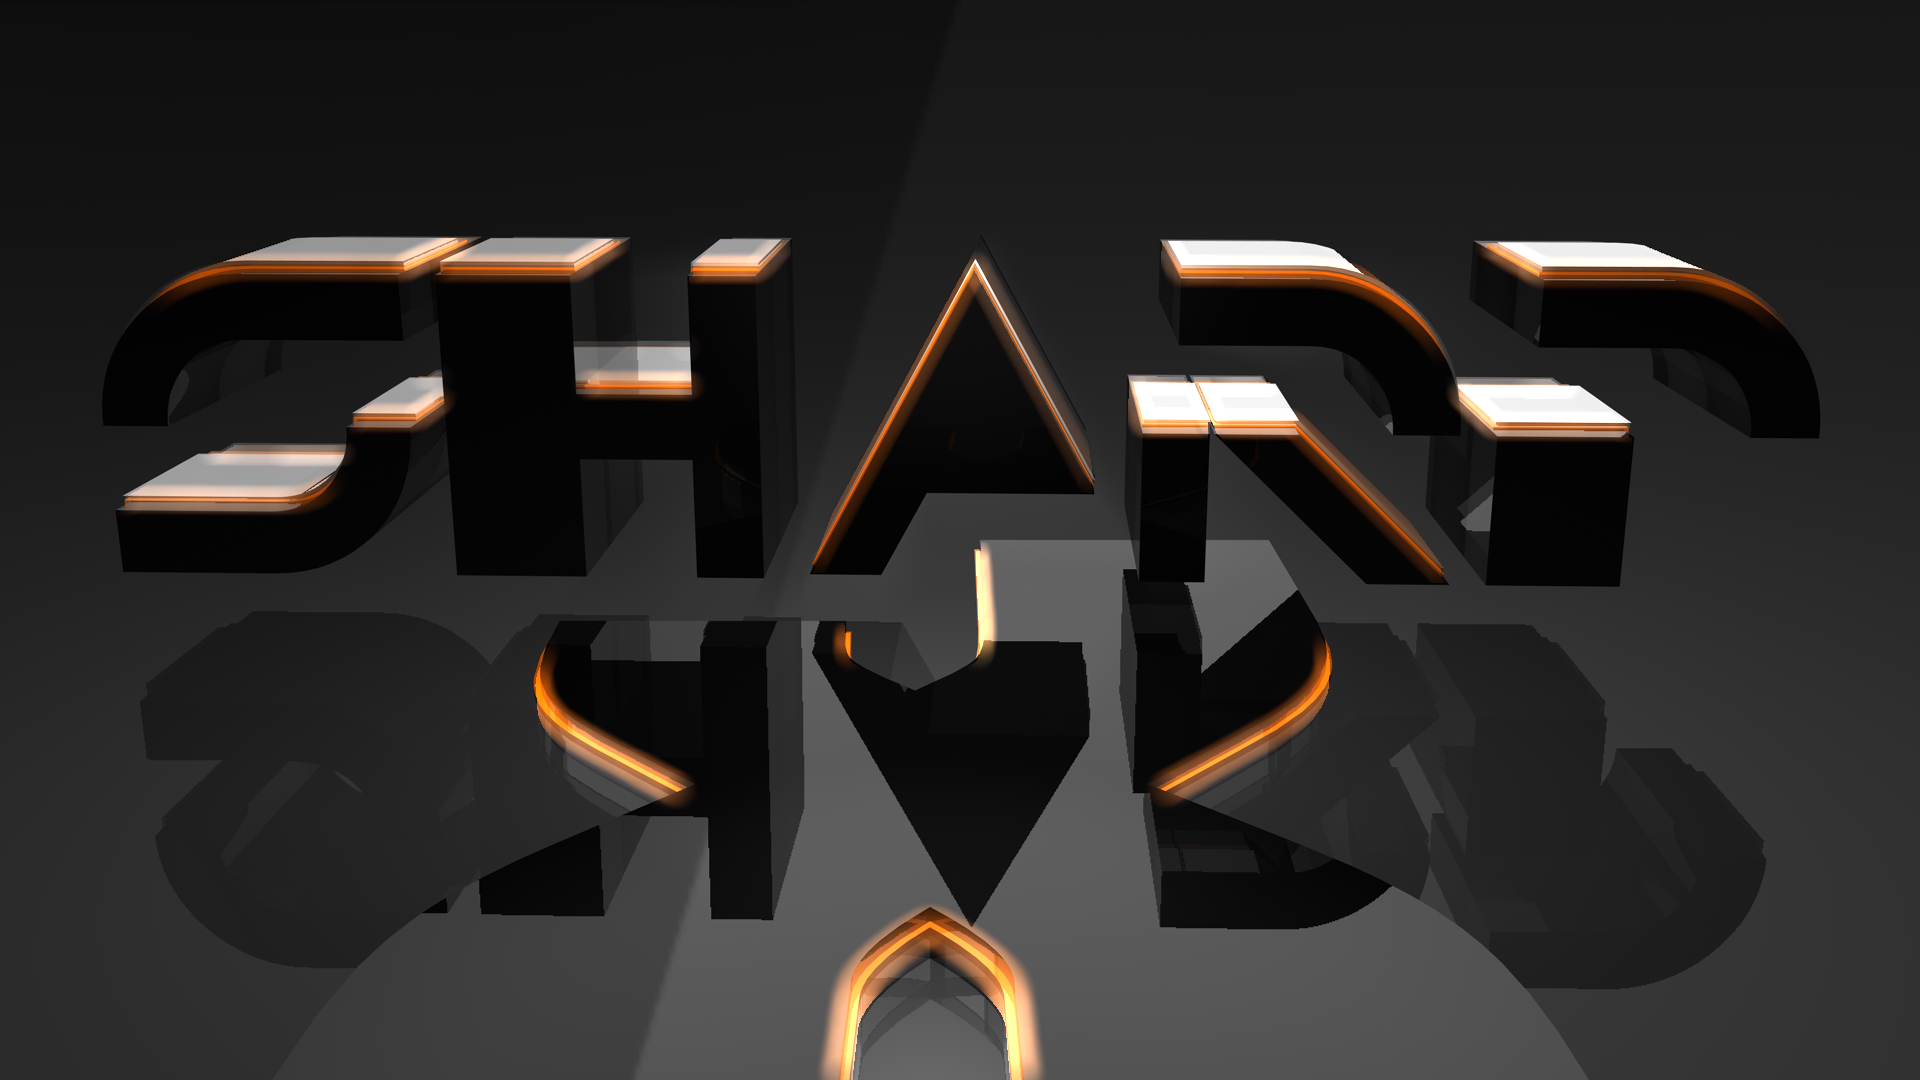 wallpapers wallpaper style sharpx details back 1920x1080